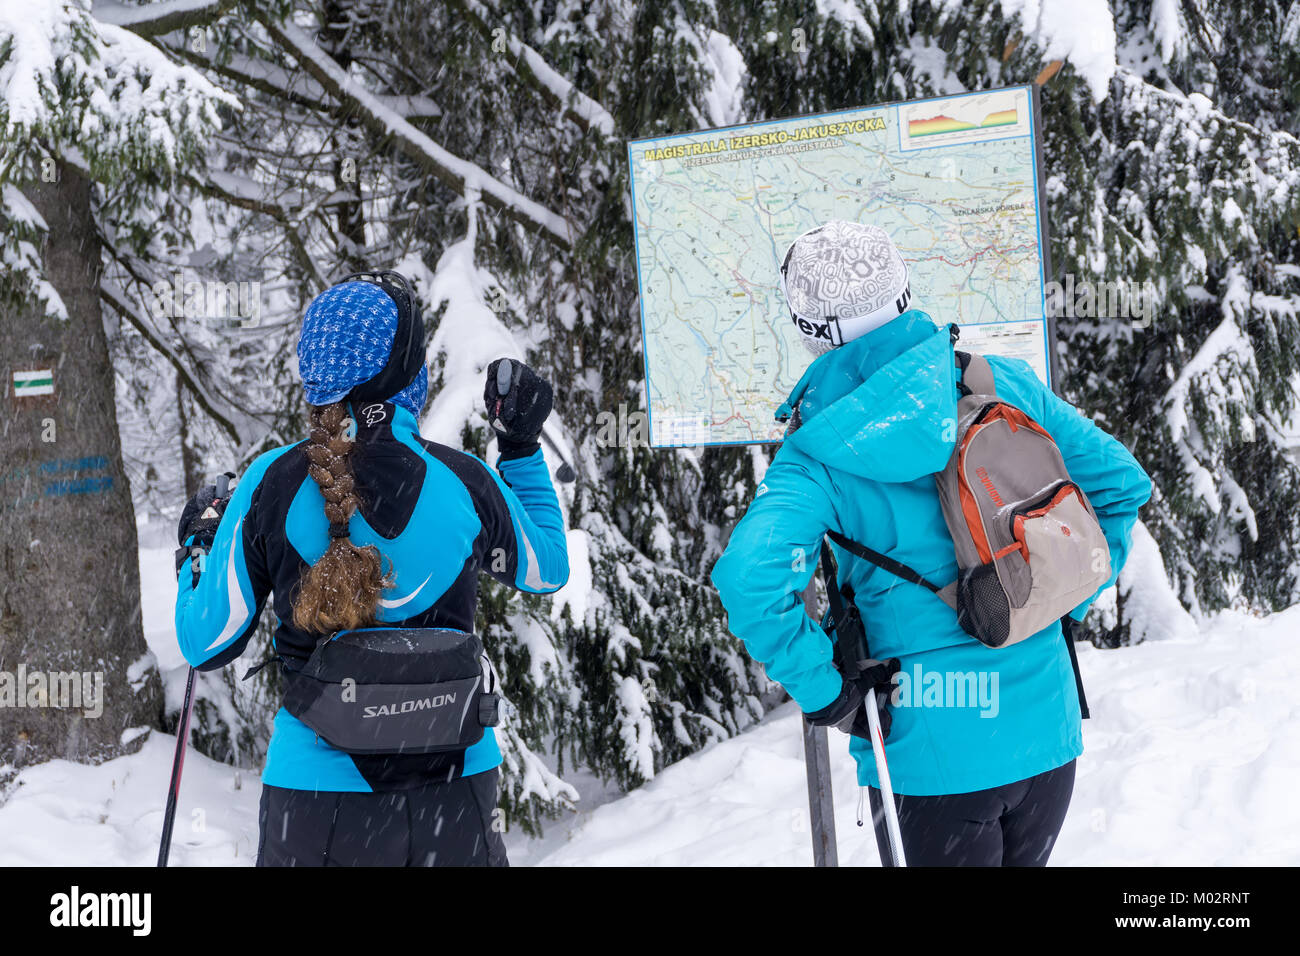 Two women skiers looking for a cross-country route on the map. Jakuszyce, Giant Mountains, Karkonosze, Poland, Europe. - Stock Image